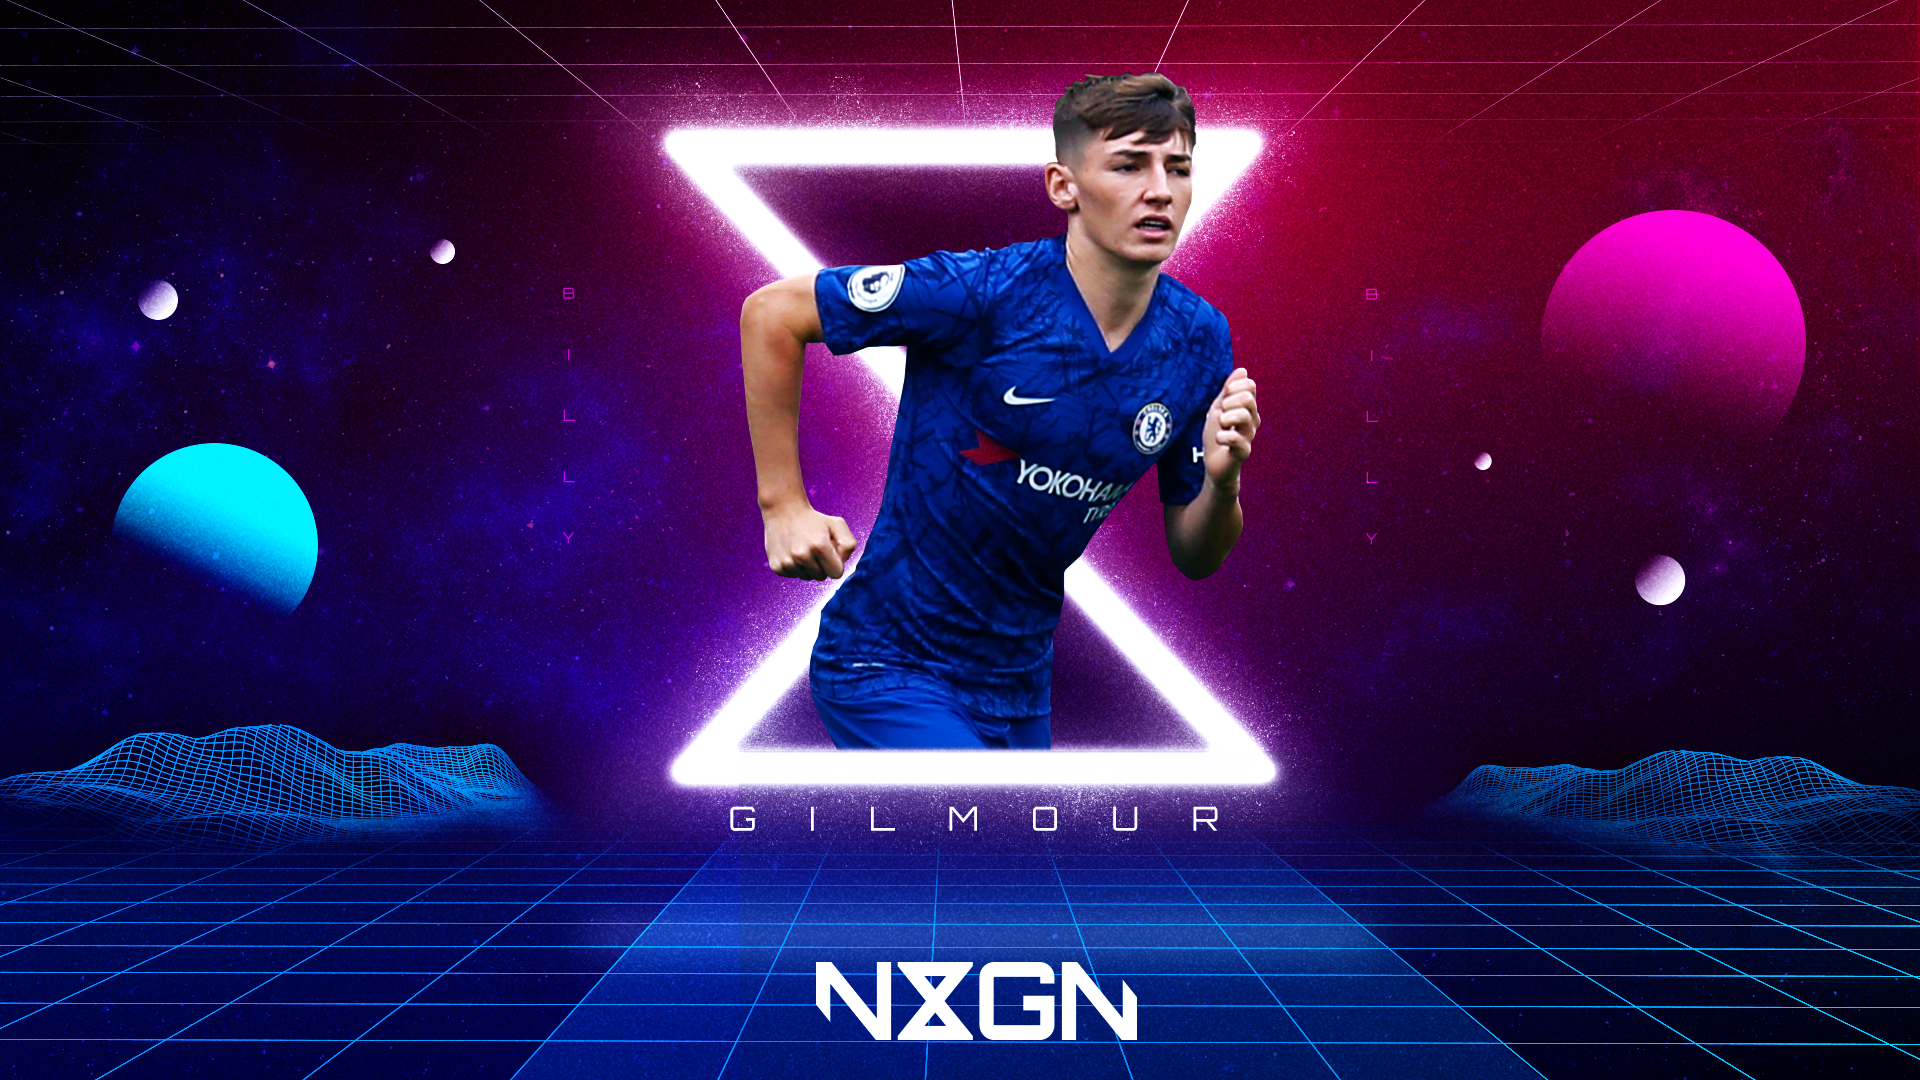 Billy Gilmour NxGn